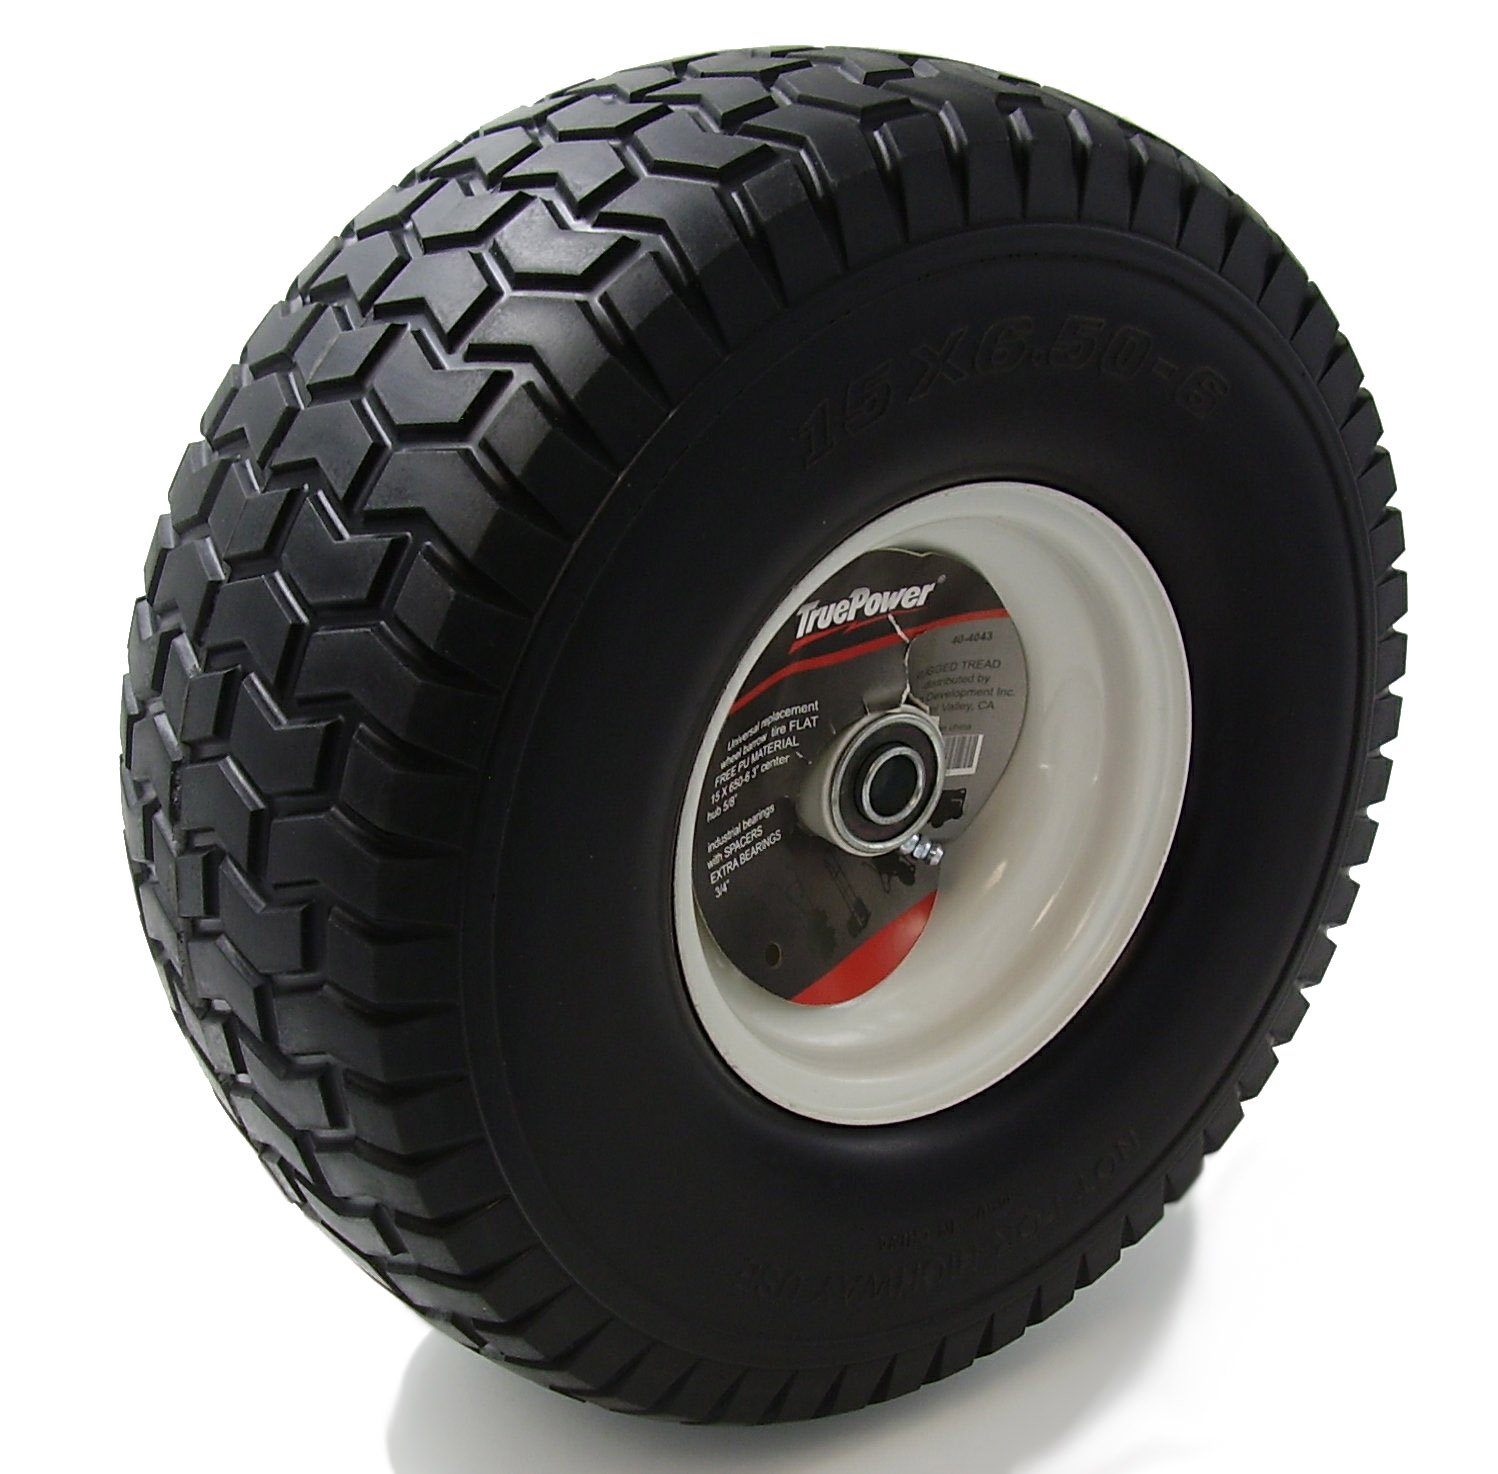 TruePower 15X6.50-6'' PU Flat Free Tire on Wheel, 3'' Centered Hub, Both 5/8'' & 3/4'' Bearings and Spacers